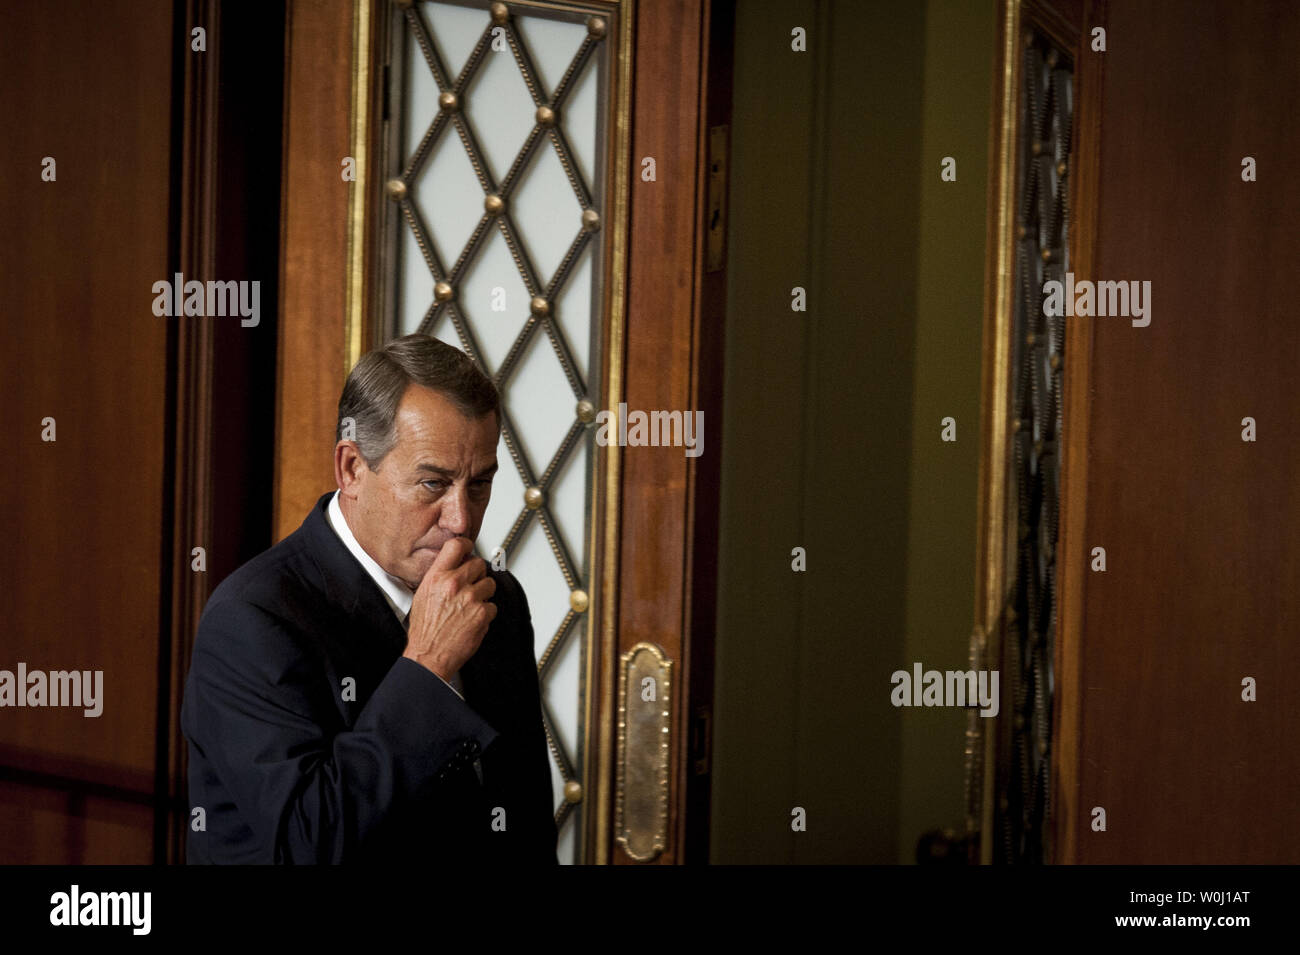 The day before he is to retire from Congress, Speaker of the House John Boehner (R-OH) leaves during a quorum call on October 29, 2015 in Washington, D.C. Following Boehner's farewell address, the House of Representatives will vote on Boehner's replacement for Speaker. Photo by Pete Marovich/UPI - Stock Image